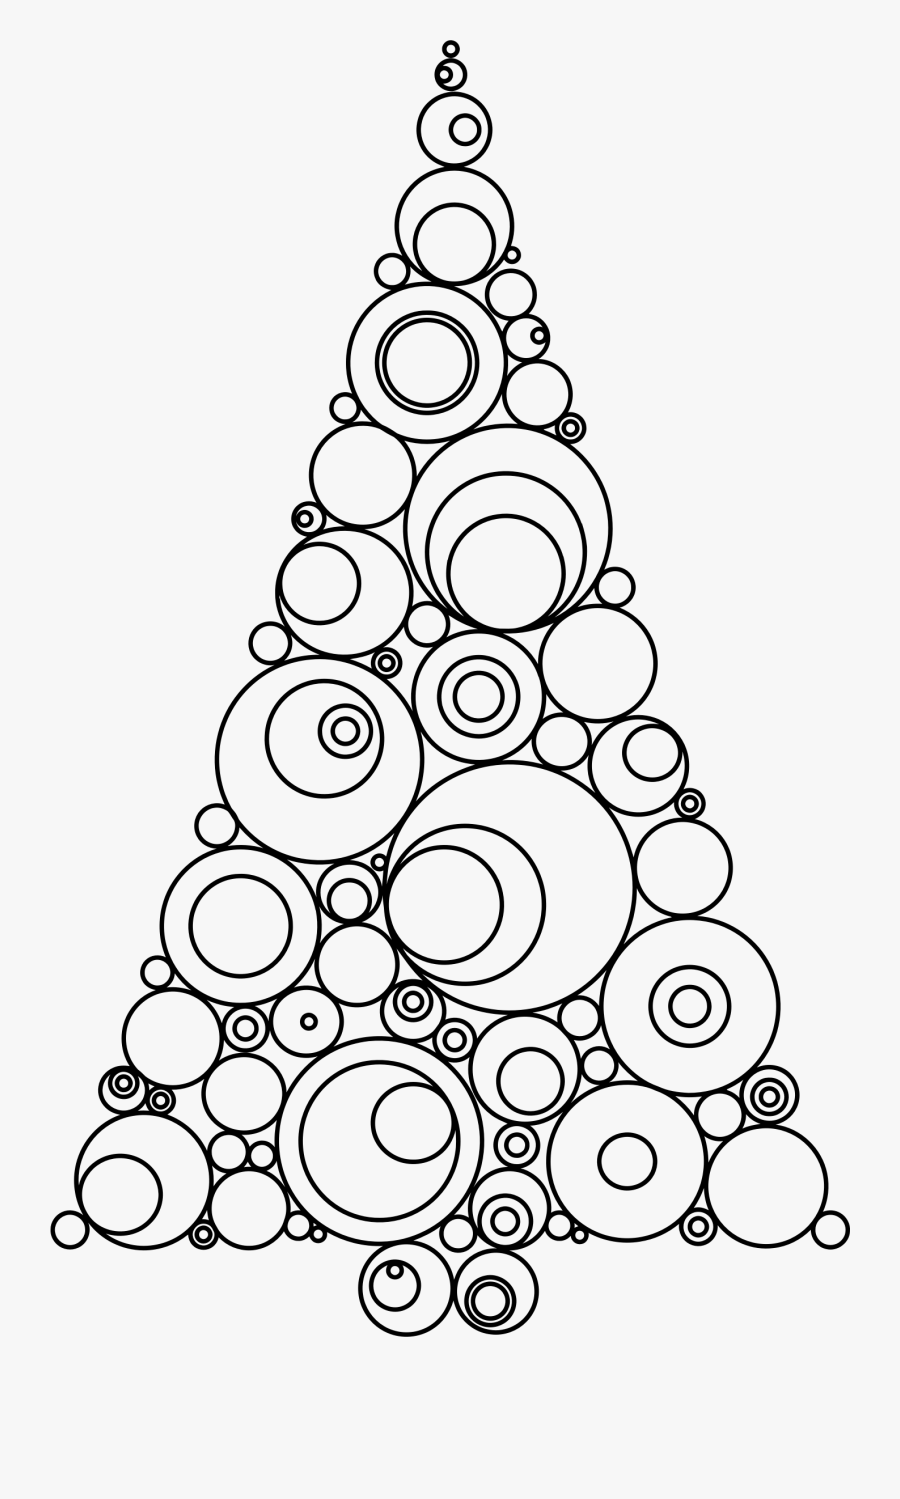 Abstract Christmas Tree Jpg Black And White Download.